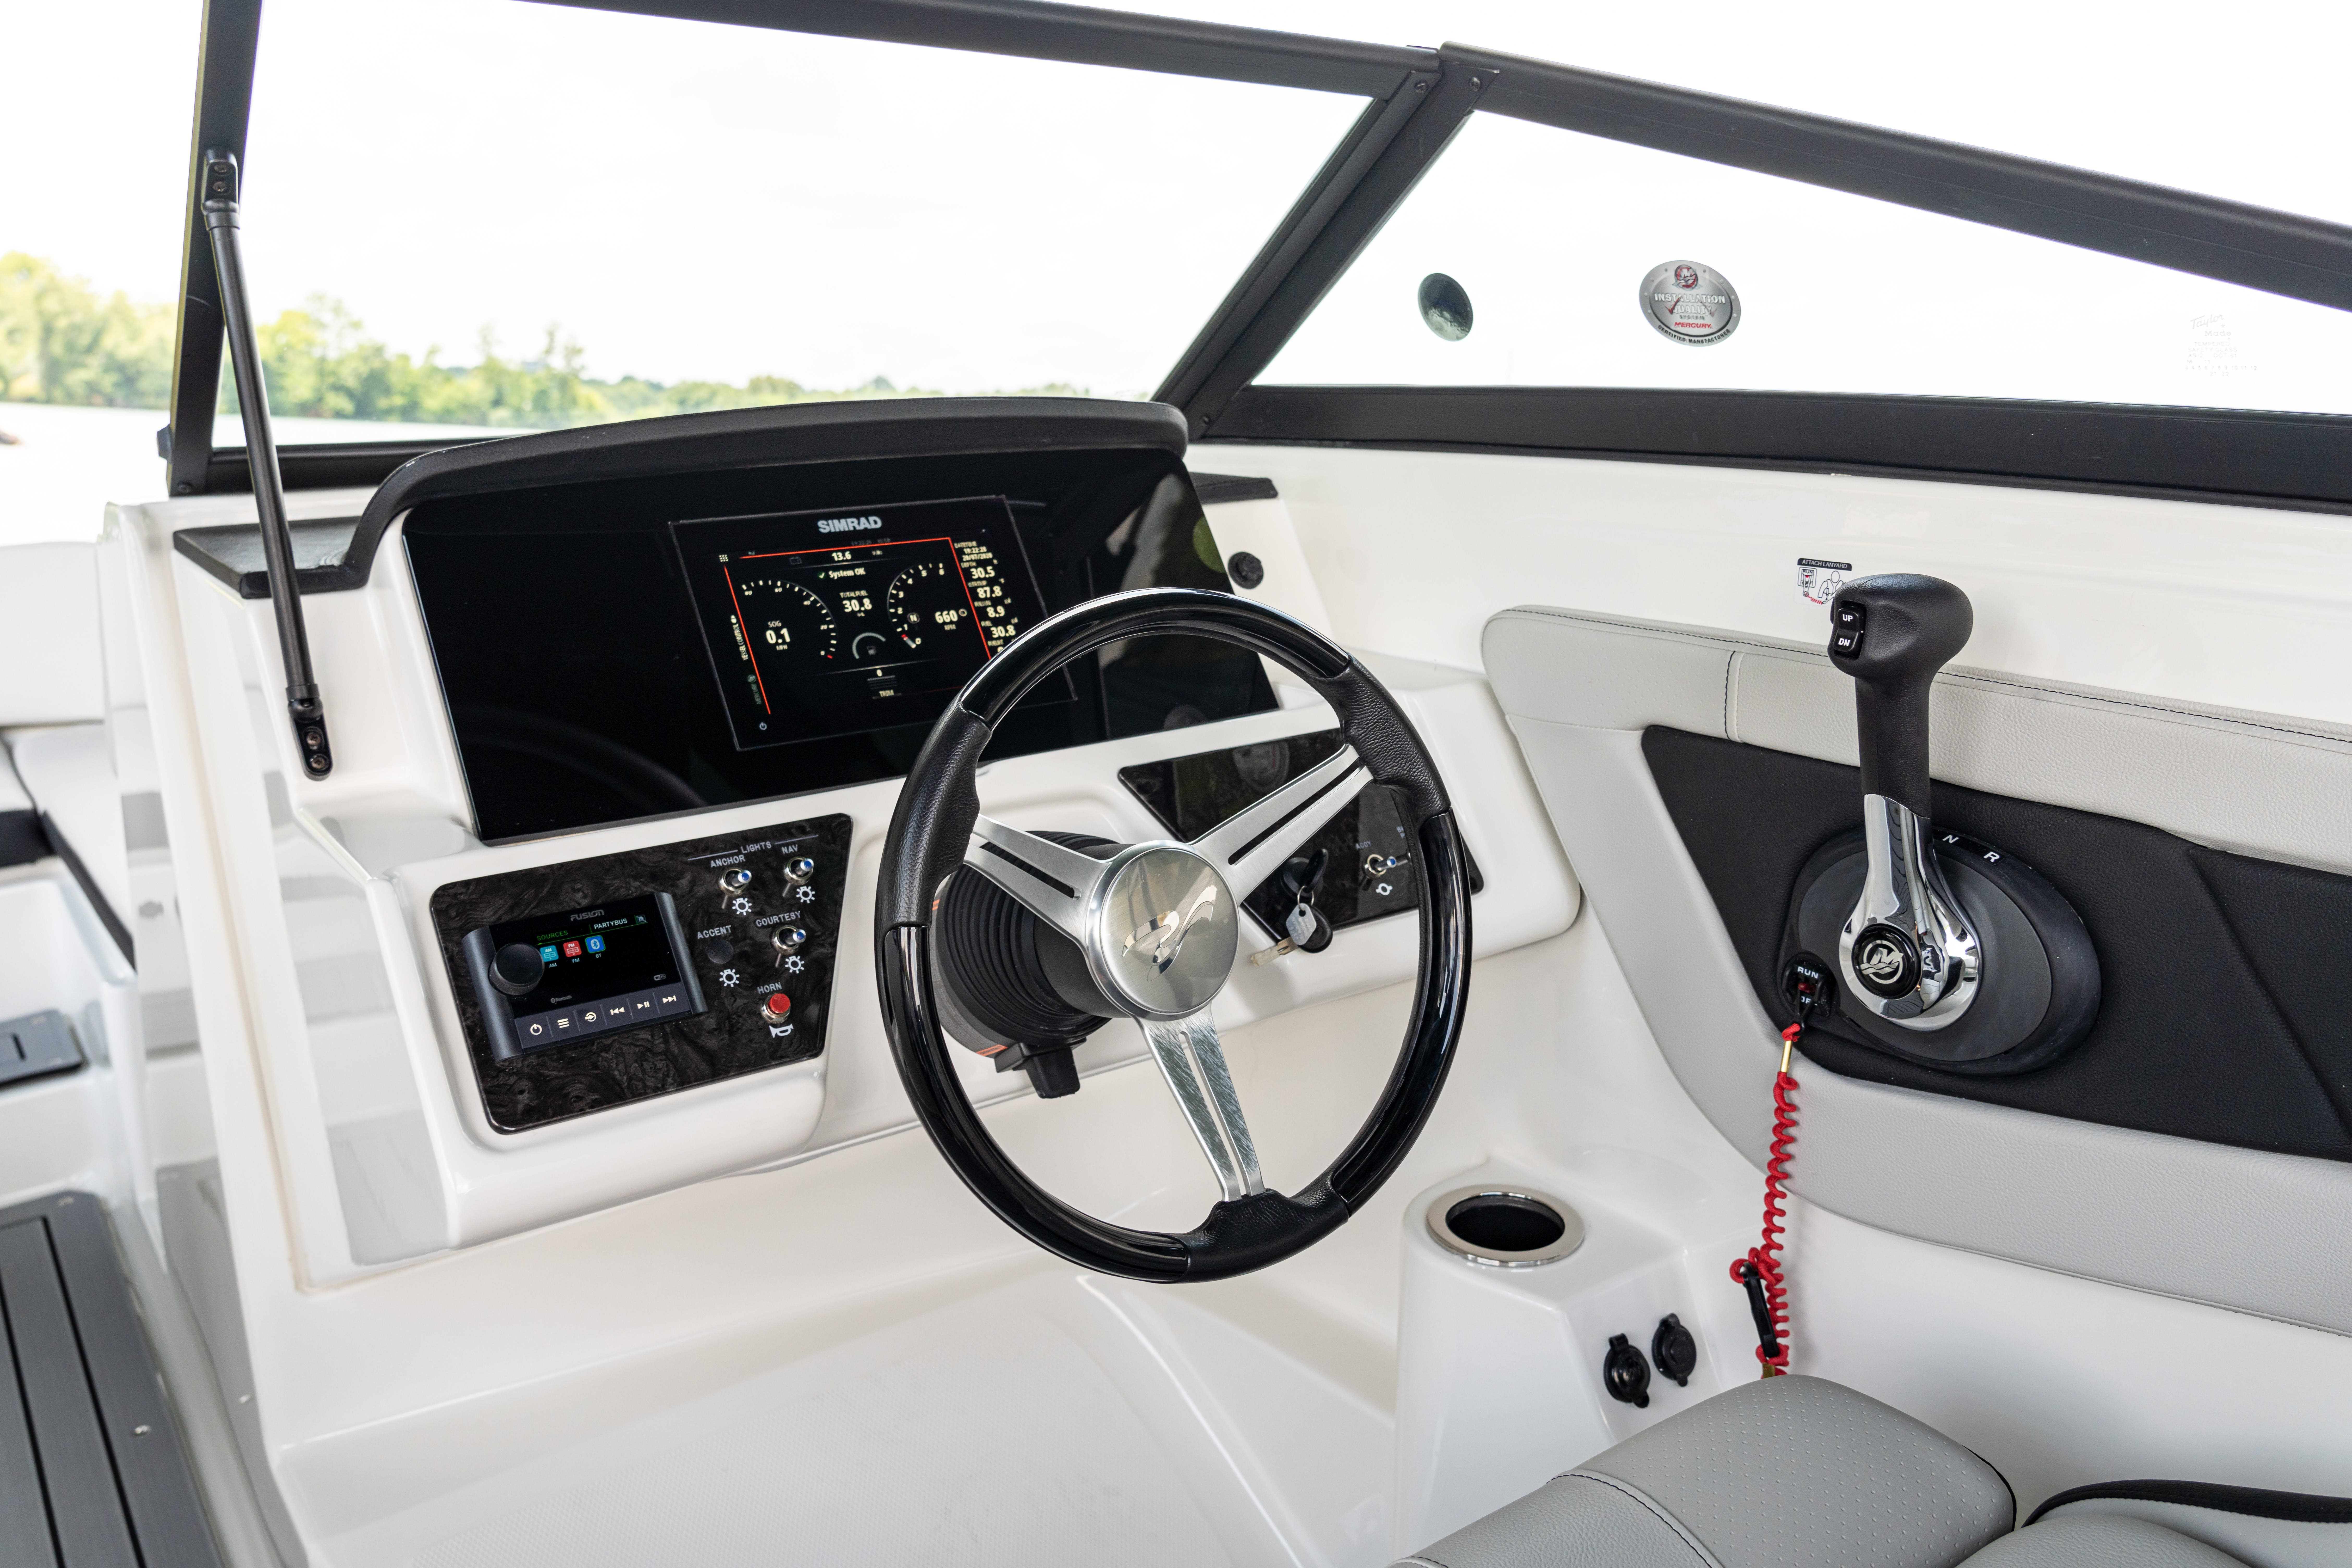 2021 Sea Ray boat for sale, model of the boat is 190 SPXO & Image # 3 of 8